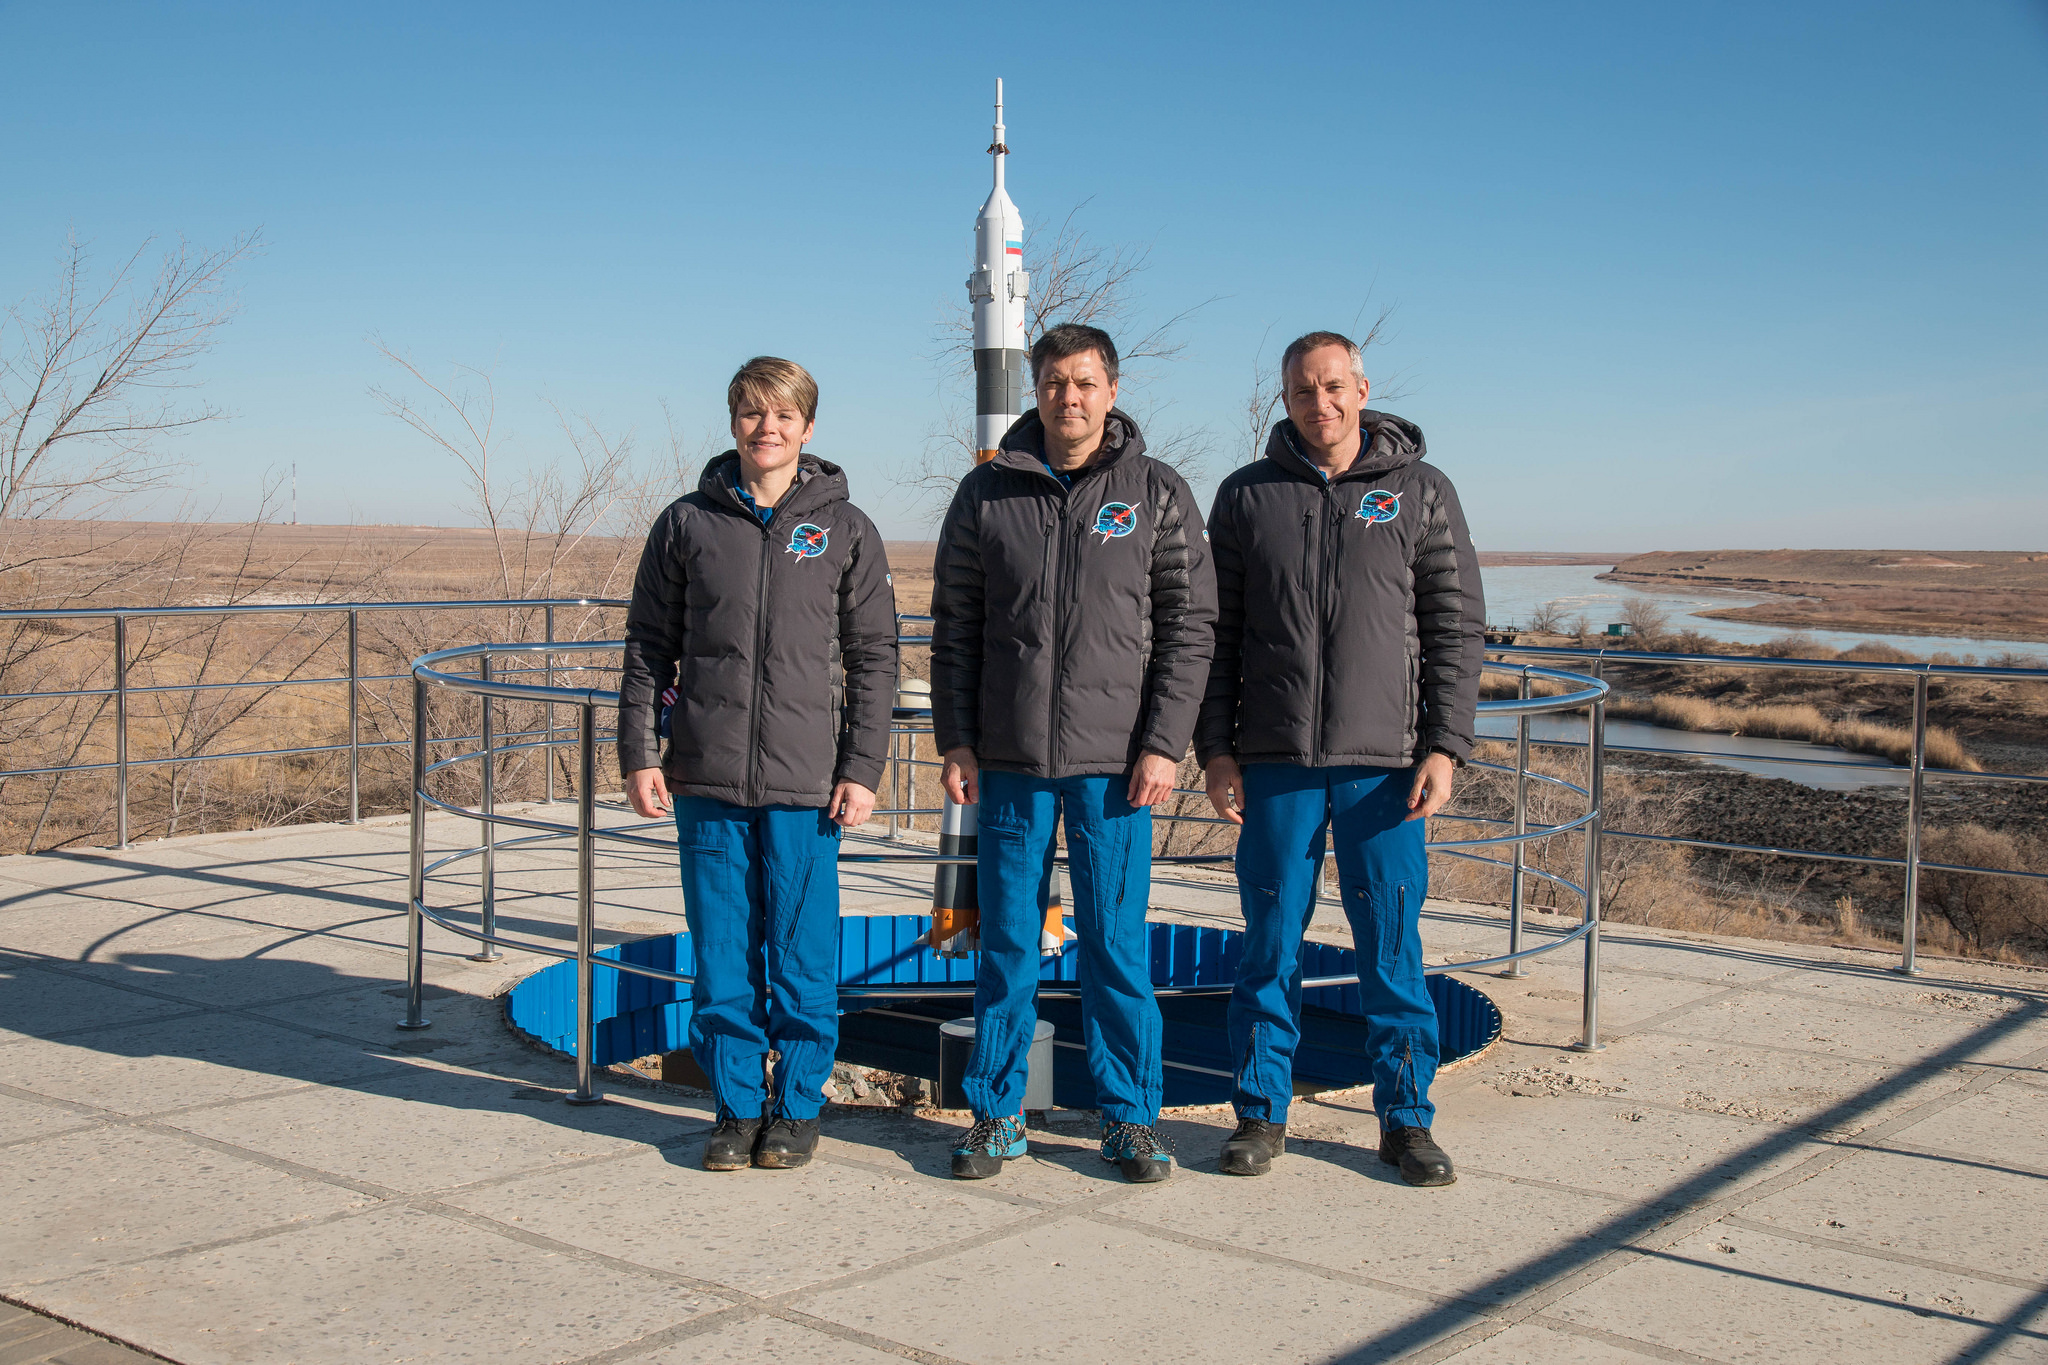 Expedition 58 crew members during traditional pre-launch activities